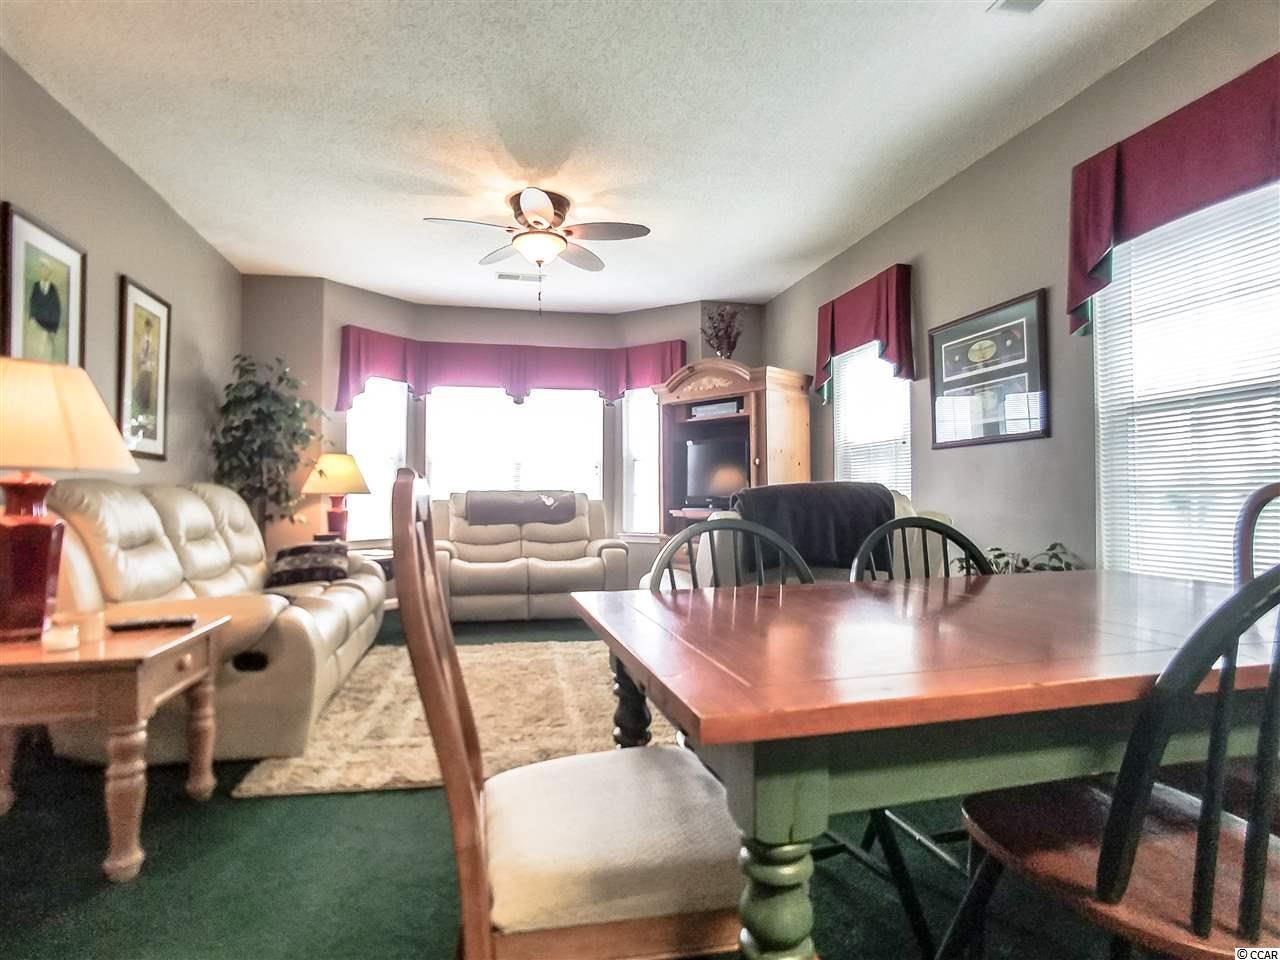 3 bedroom  Turnberry Park condo for sale